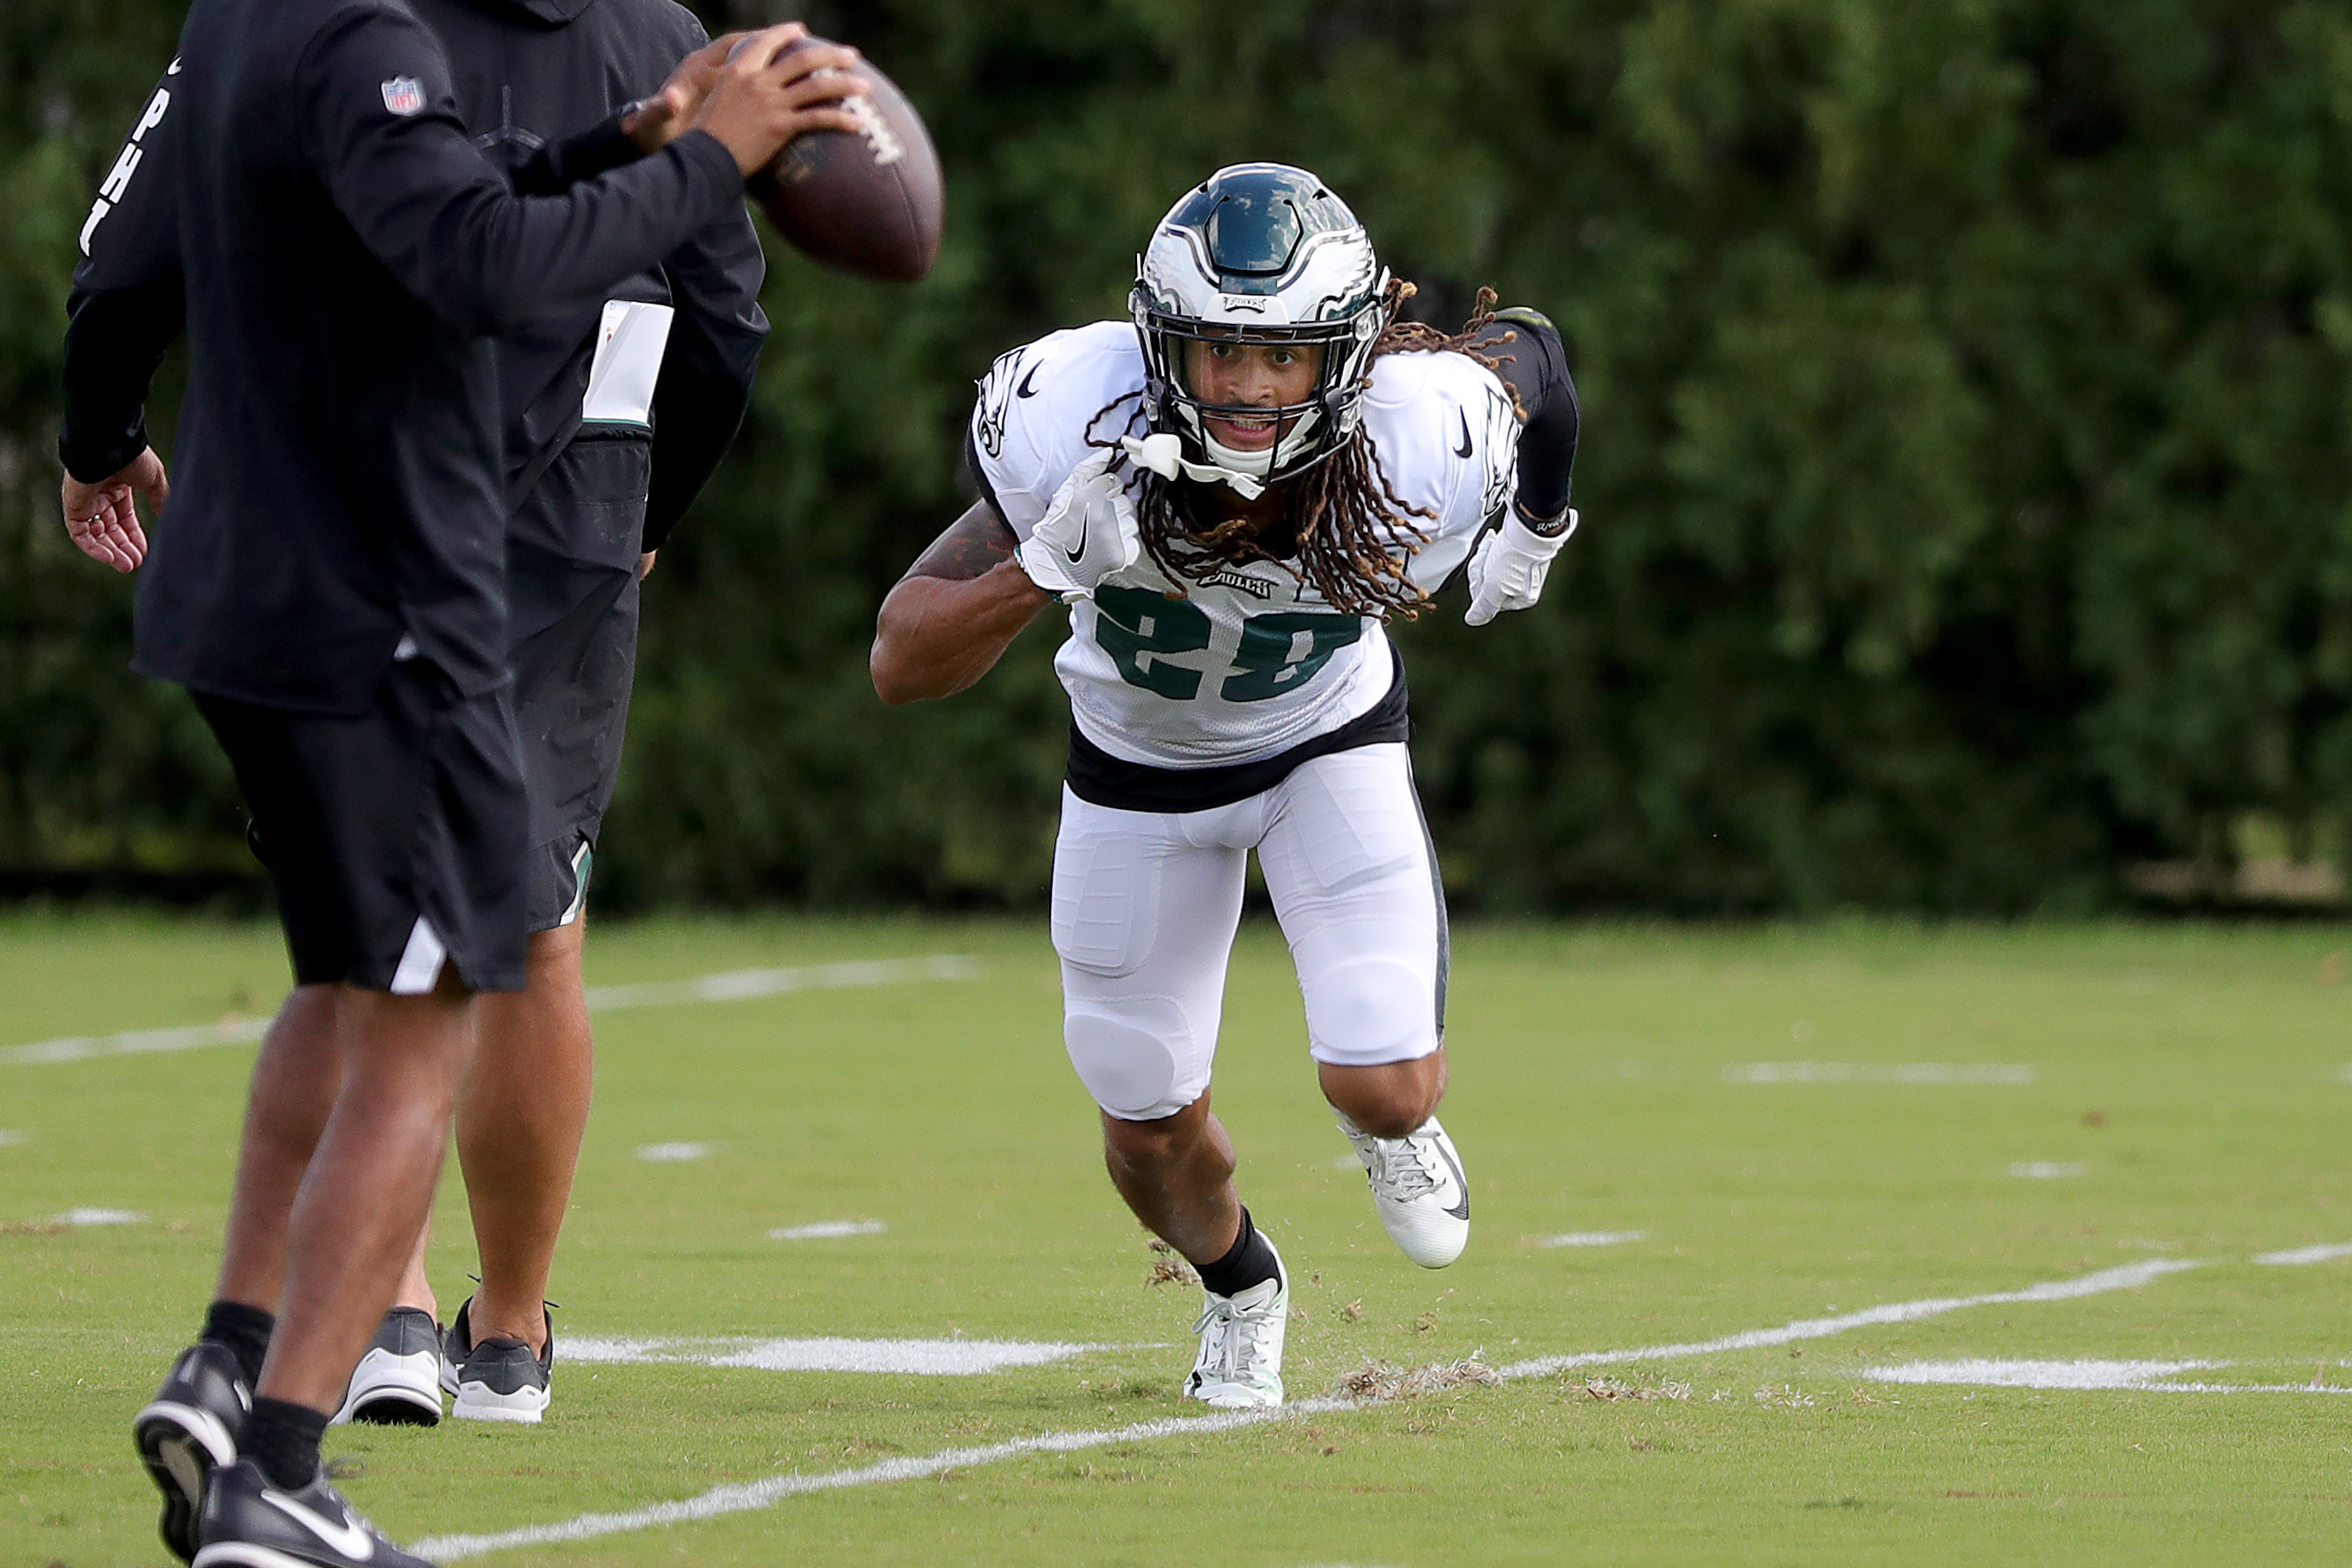 Eagles Avonte Maddox follows the ball during a drill at Eagles practice at the NovaCare Complex in Philadelphia, PA on October 3, 2018. DAVID MAIALETTI / Staff Photographer